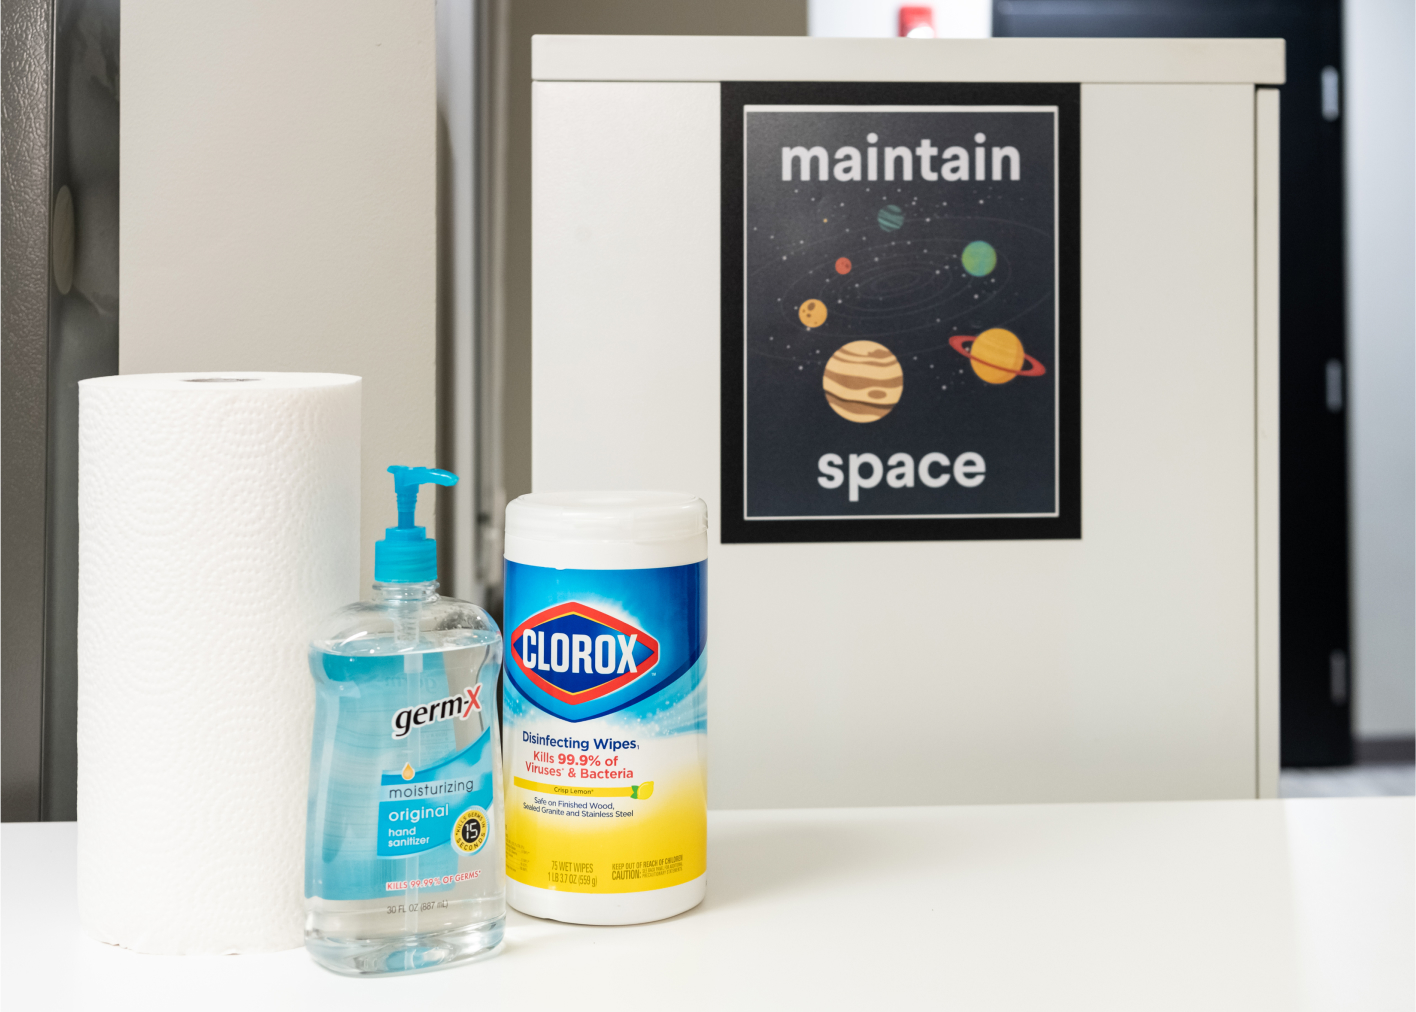 clorox wipes, safety items, picture of both